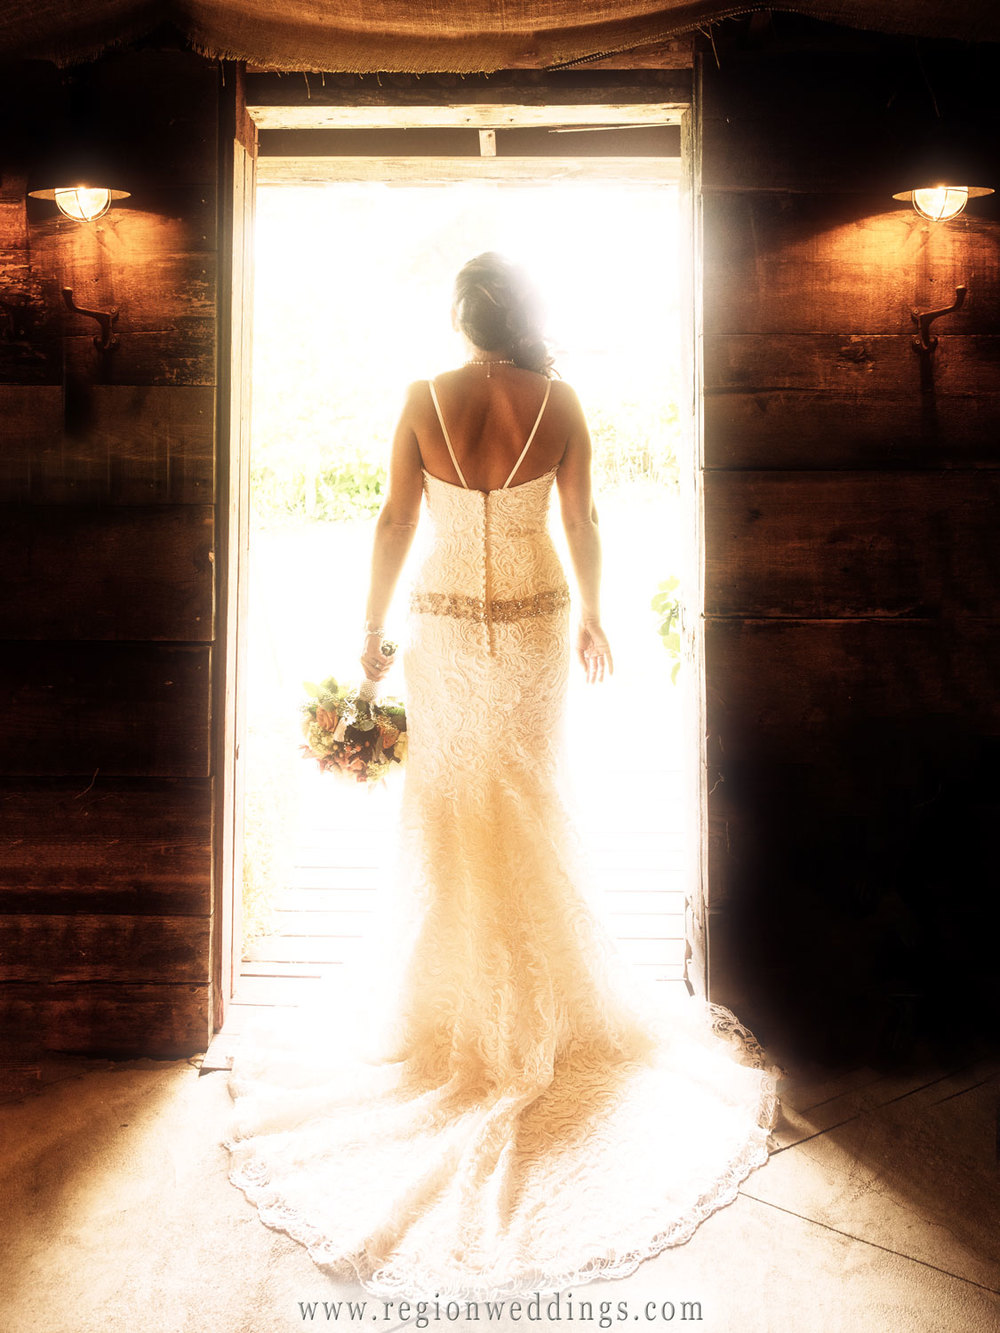 Bride in the sun lit doorway of The Red Barn Experience